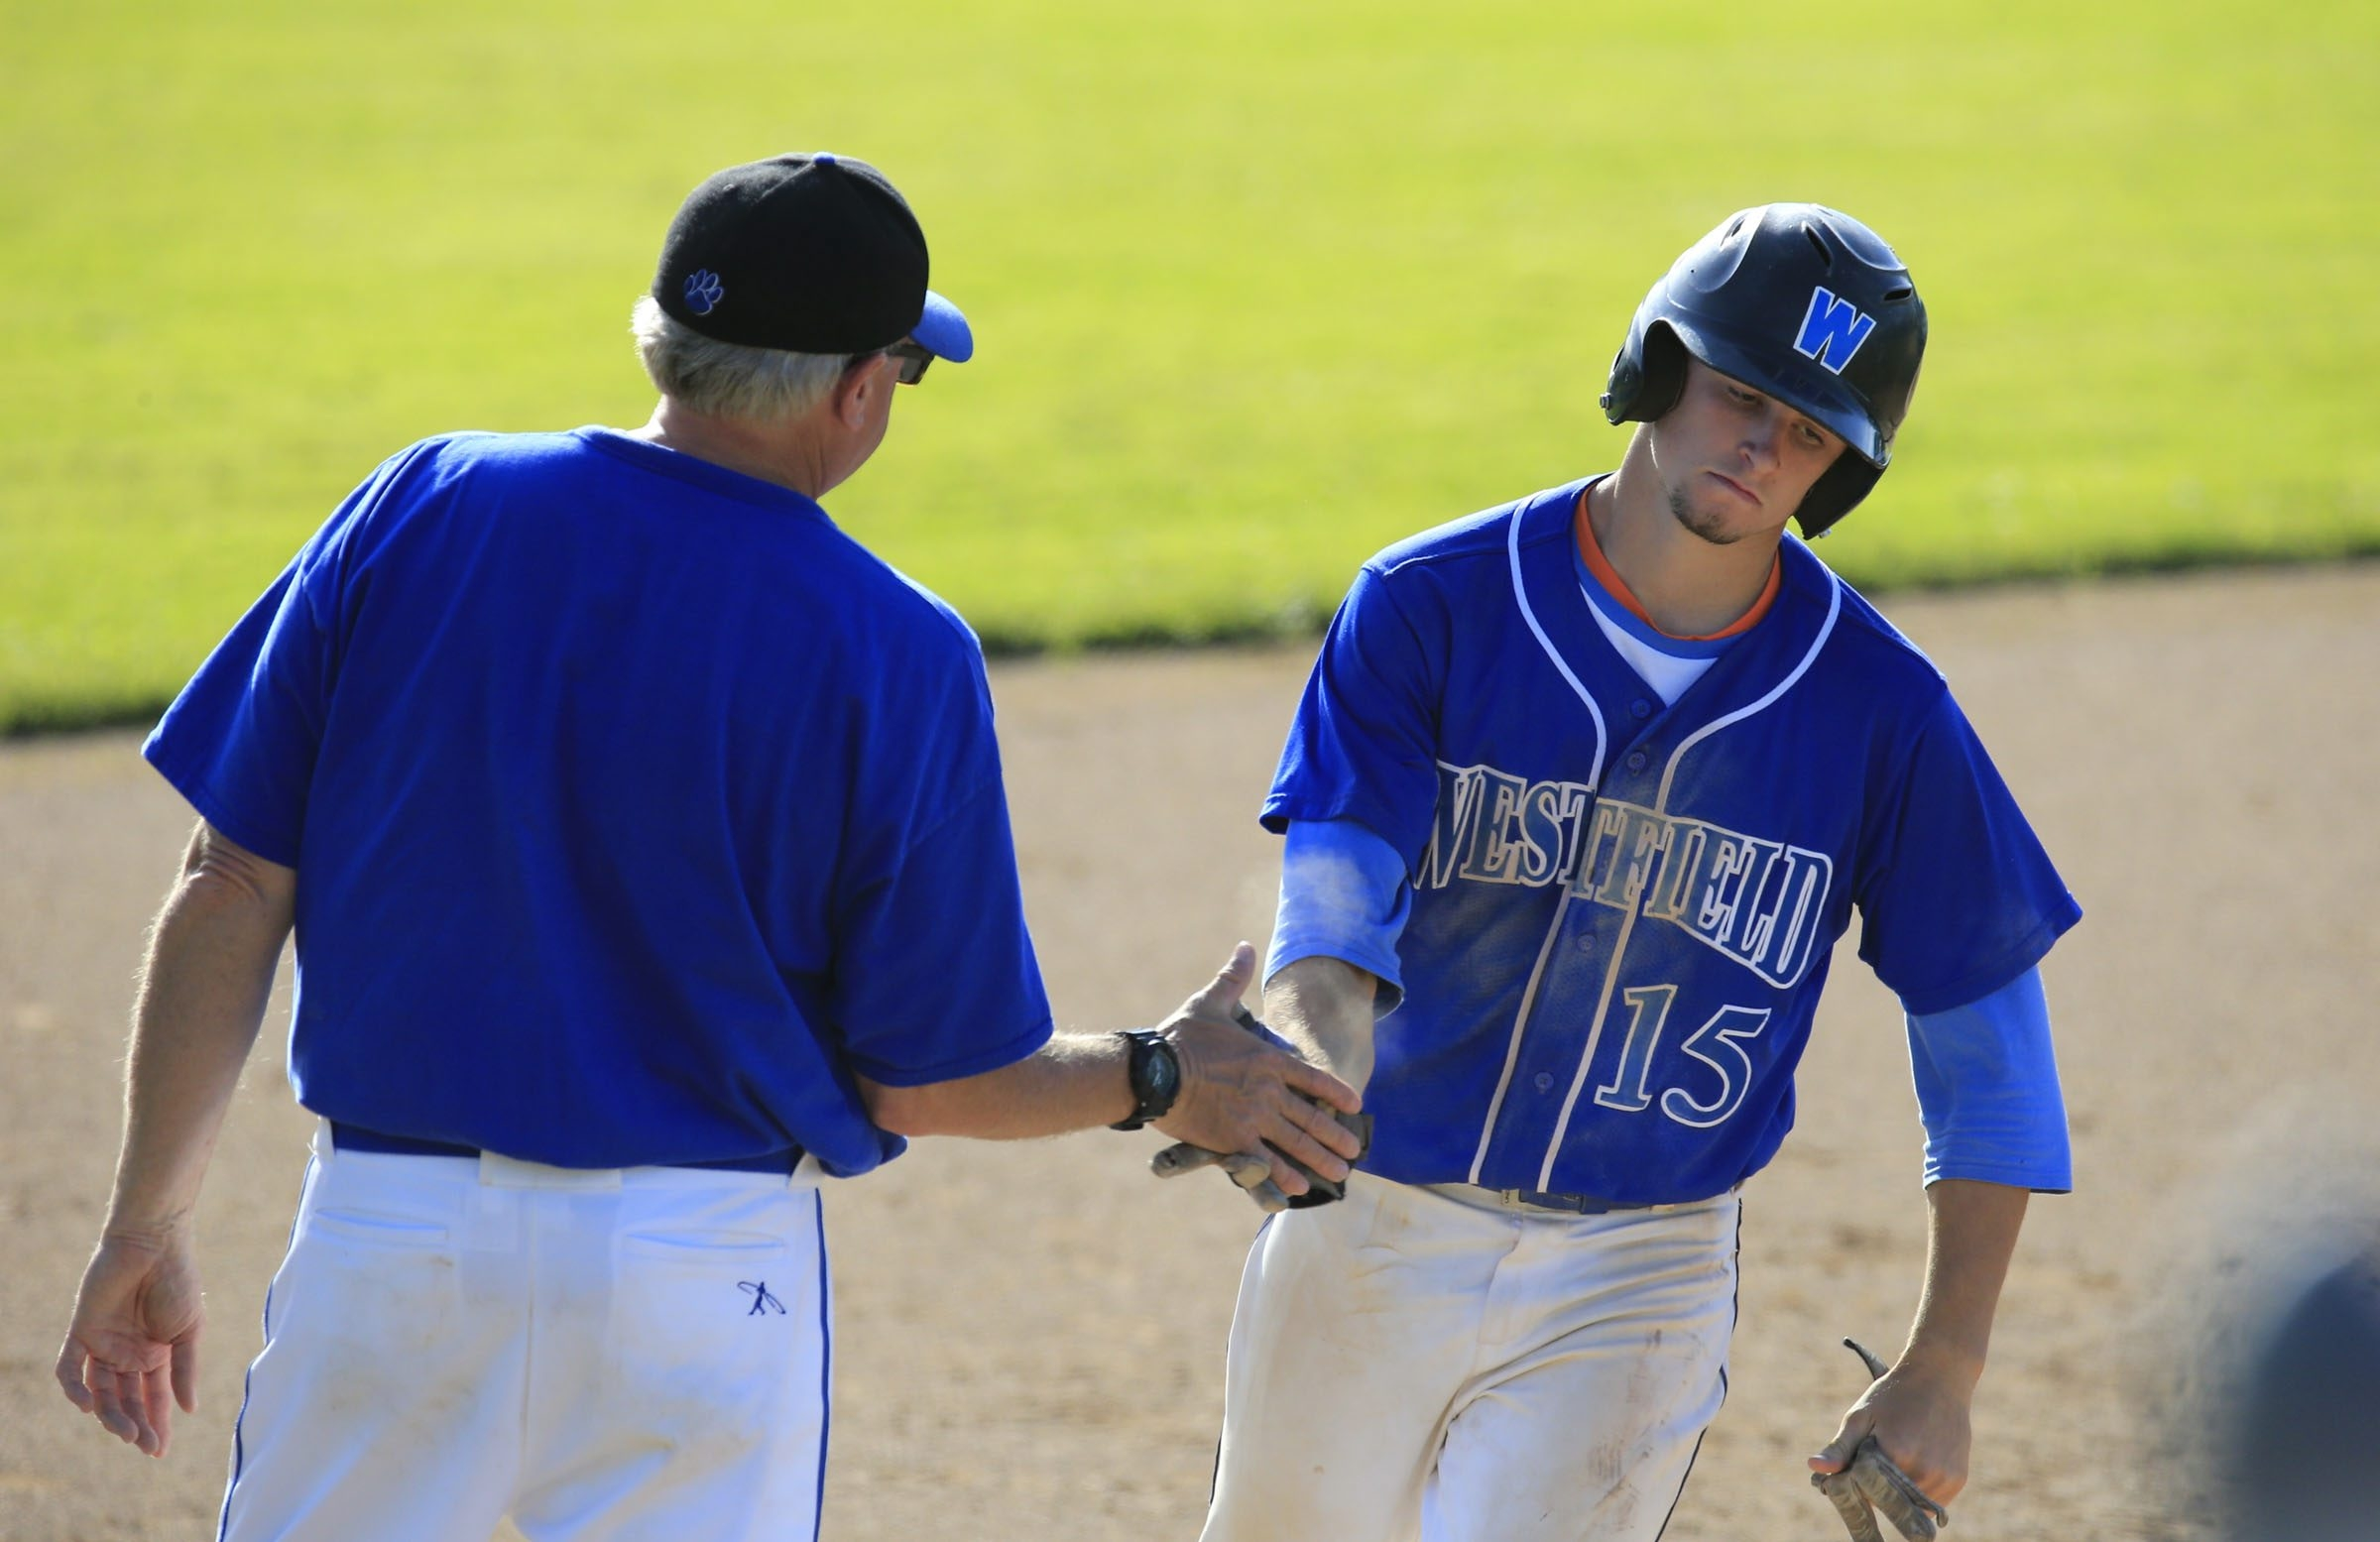 Westfield's Nolan Hunt is congratulated by coach Doug Kaltenbach after hitting a seventh-inning home run in the Class D playoff.